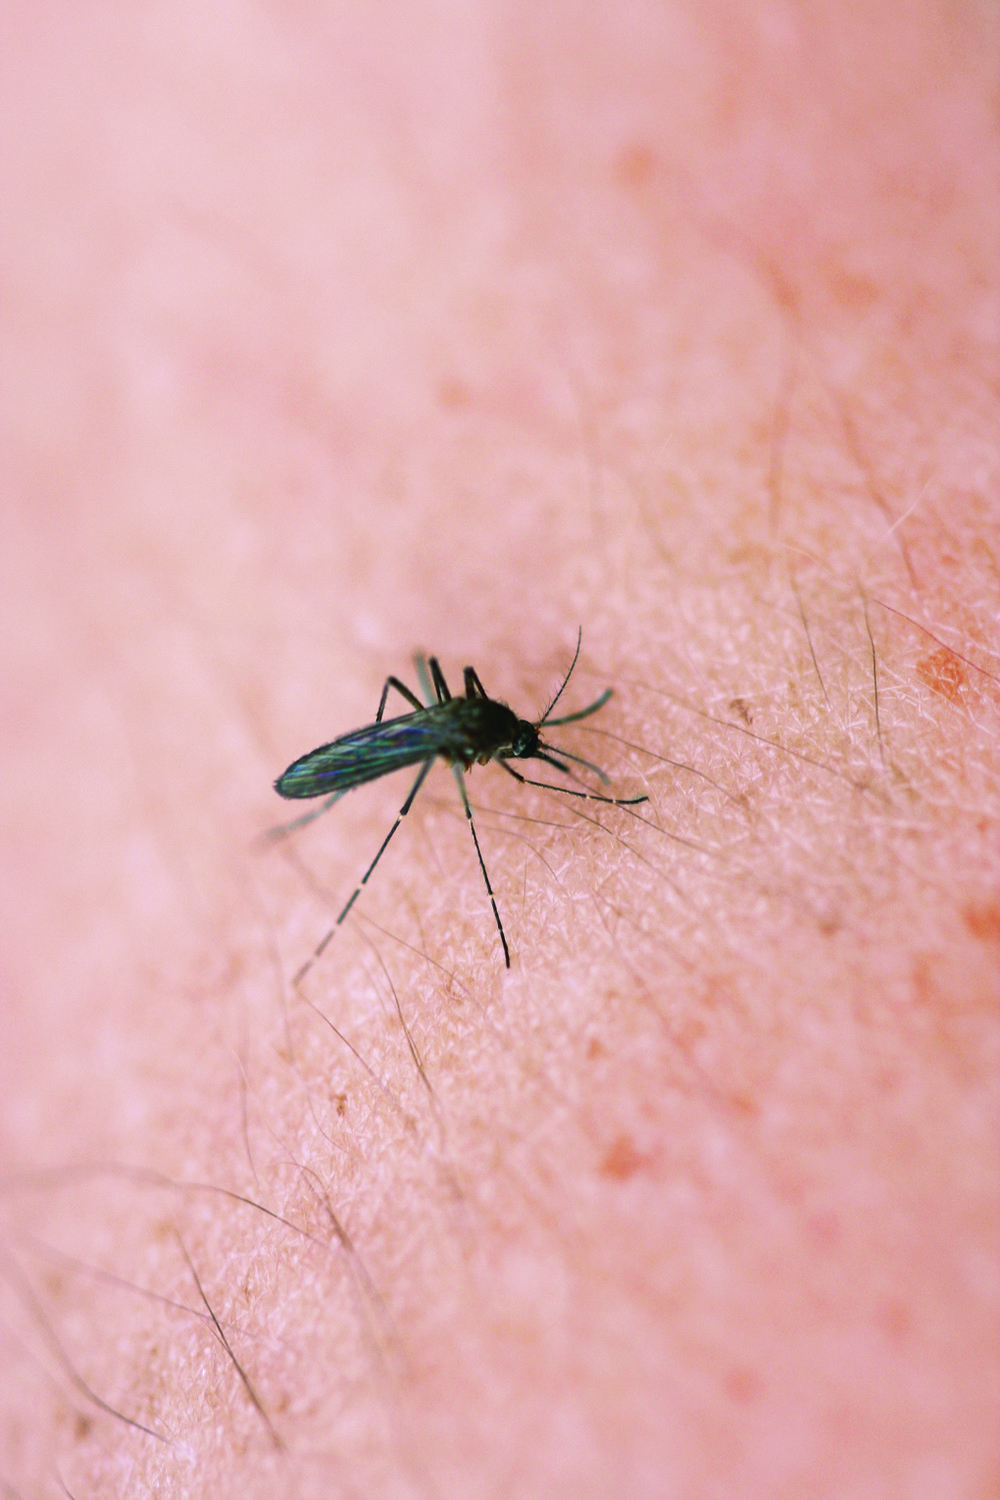 Mosquitoes and other flying pests impact many Five Towns residents' quality of life during the summer.